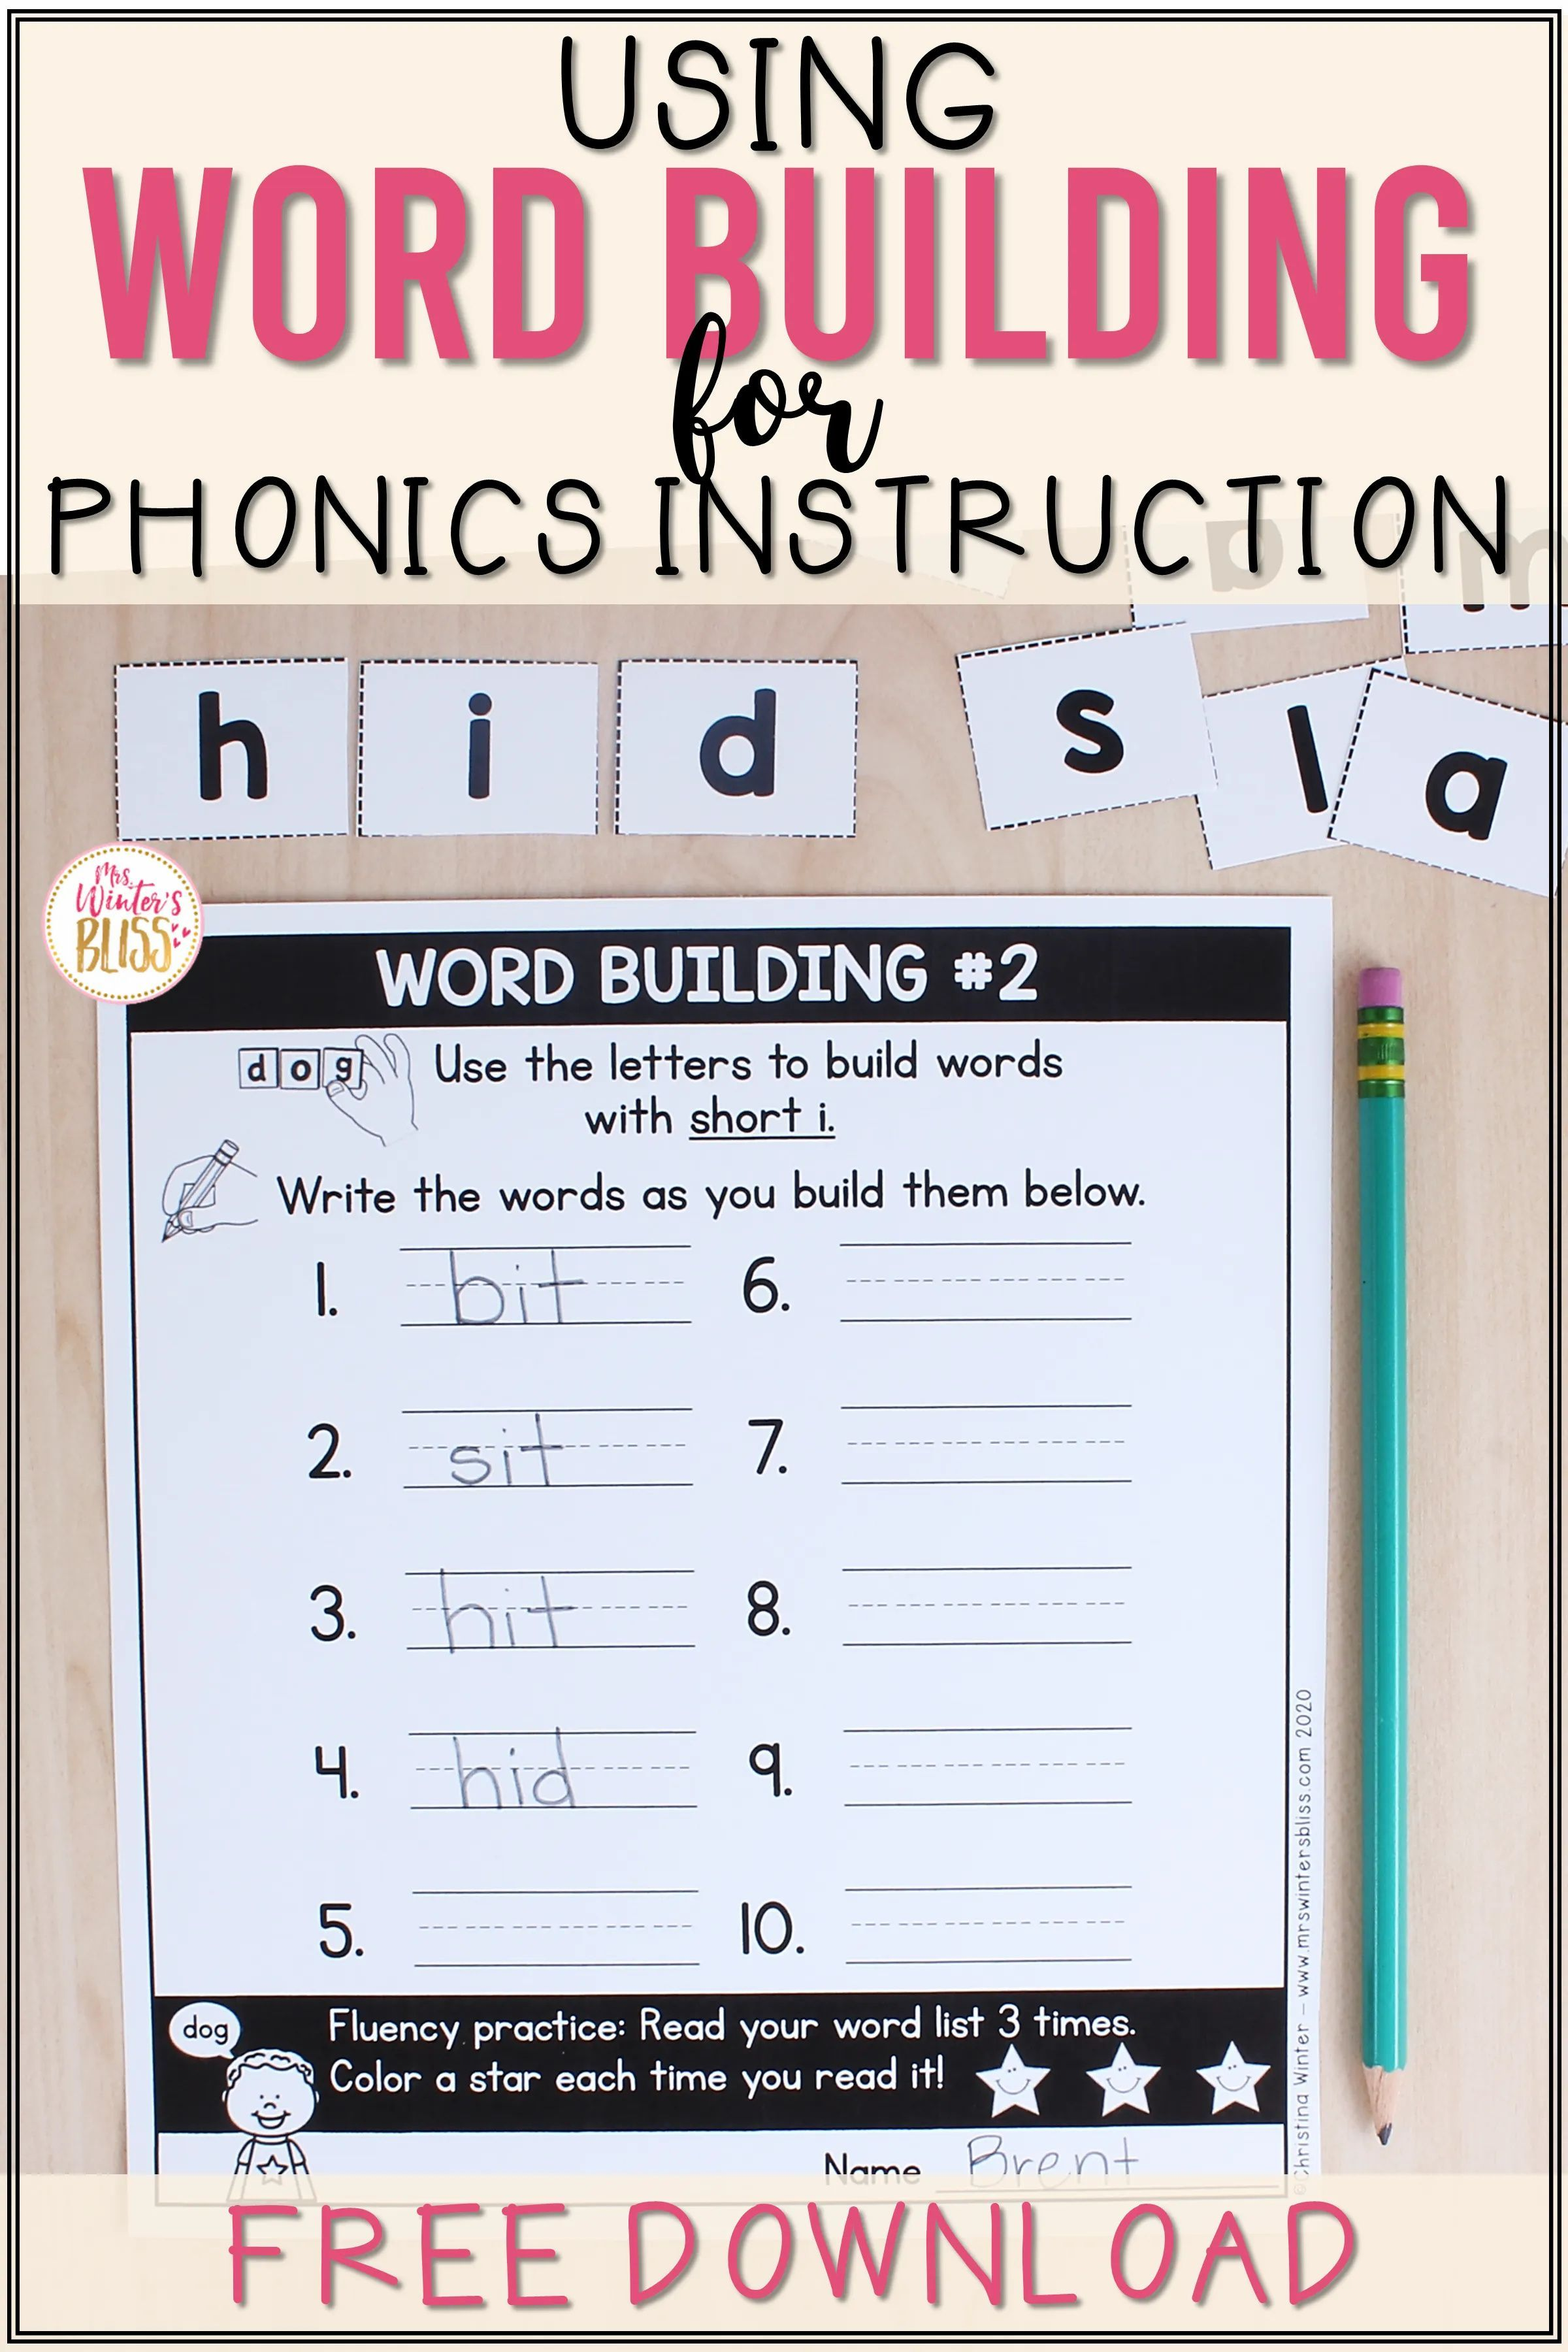 small resolution of Read The Instructions Worksheet Trick   Printable Worksheets and Activities  for Teachers